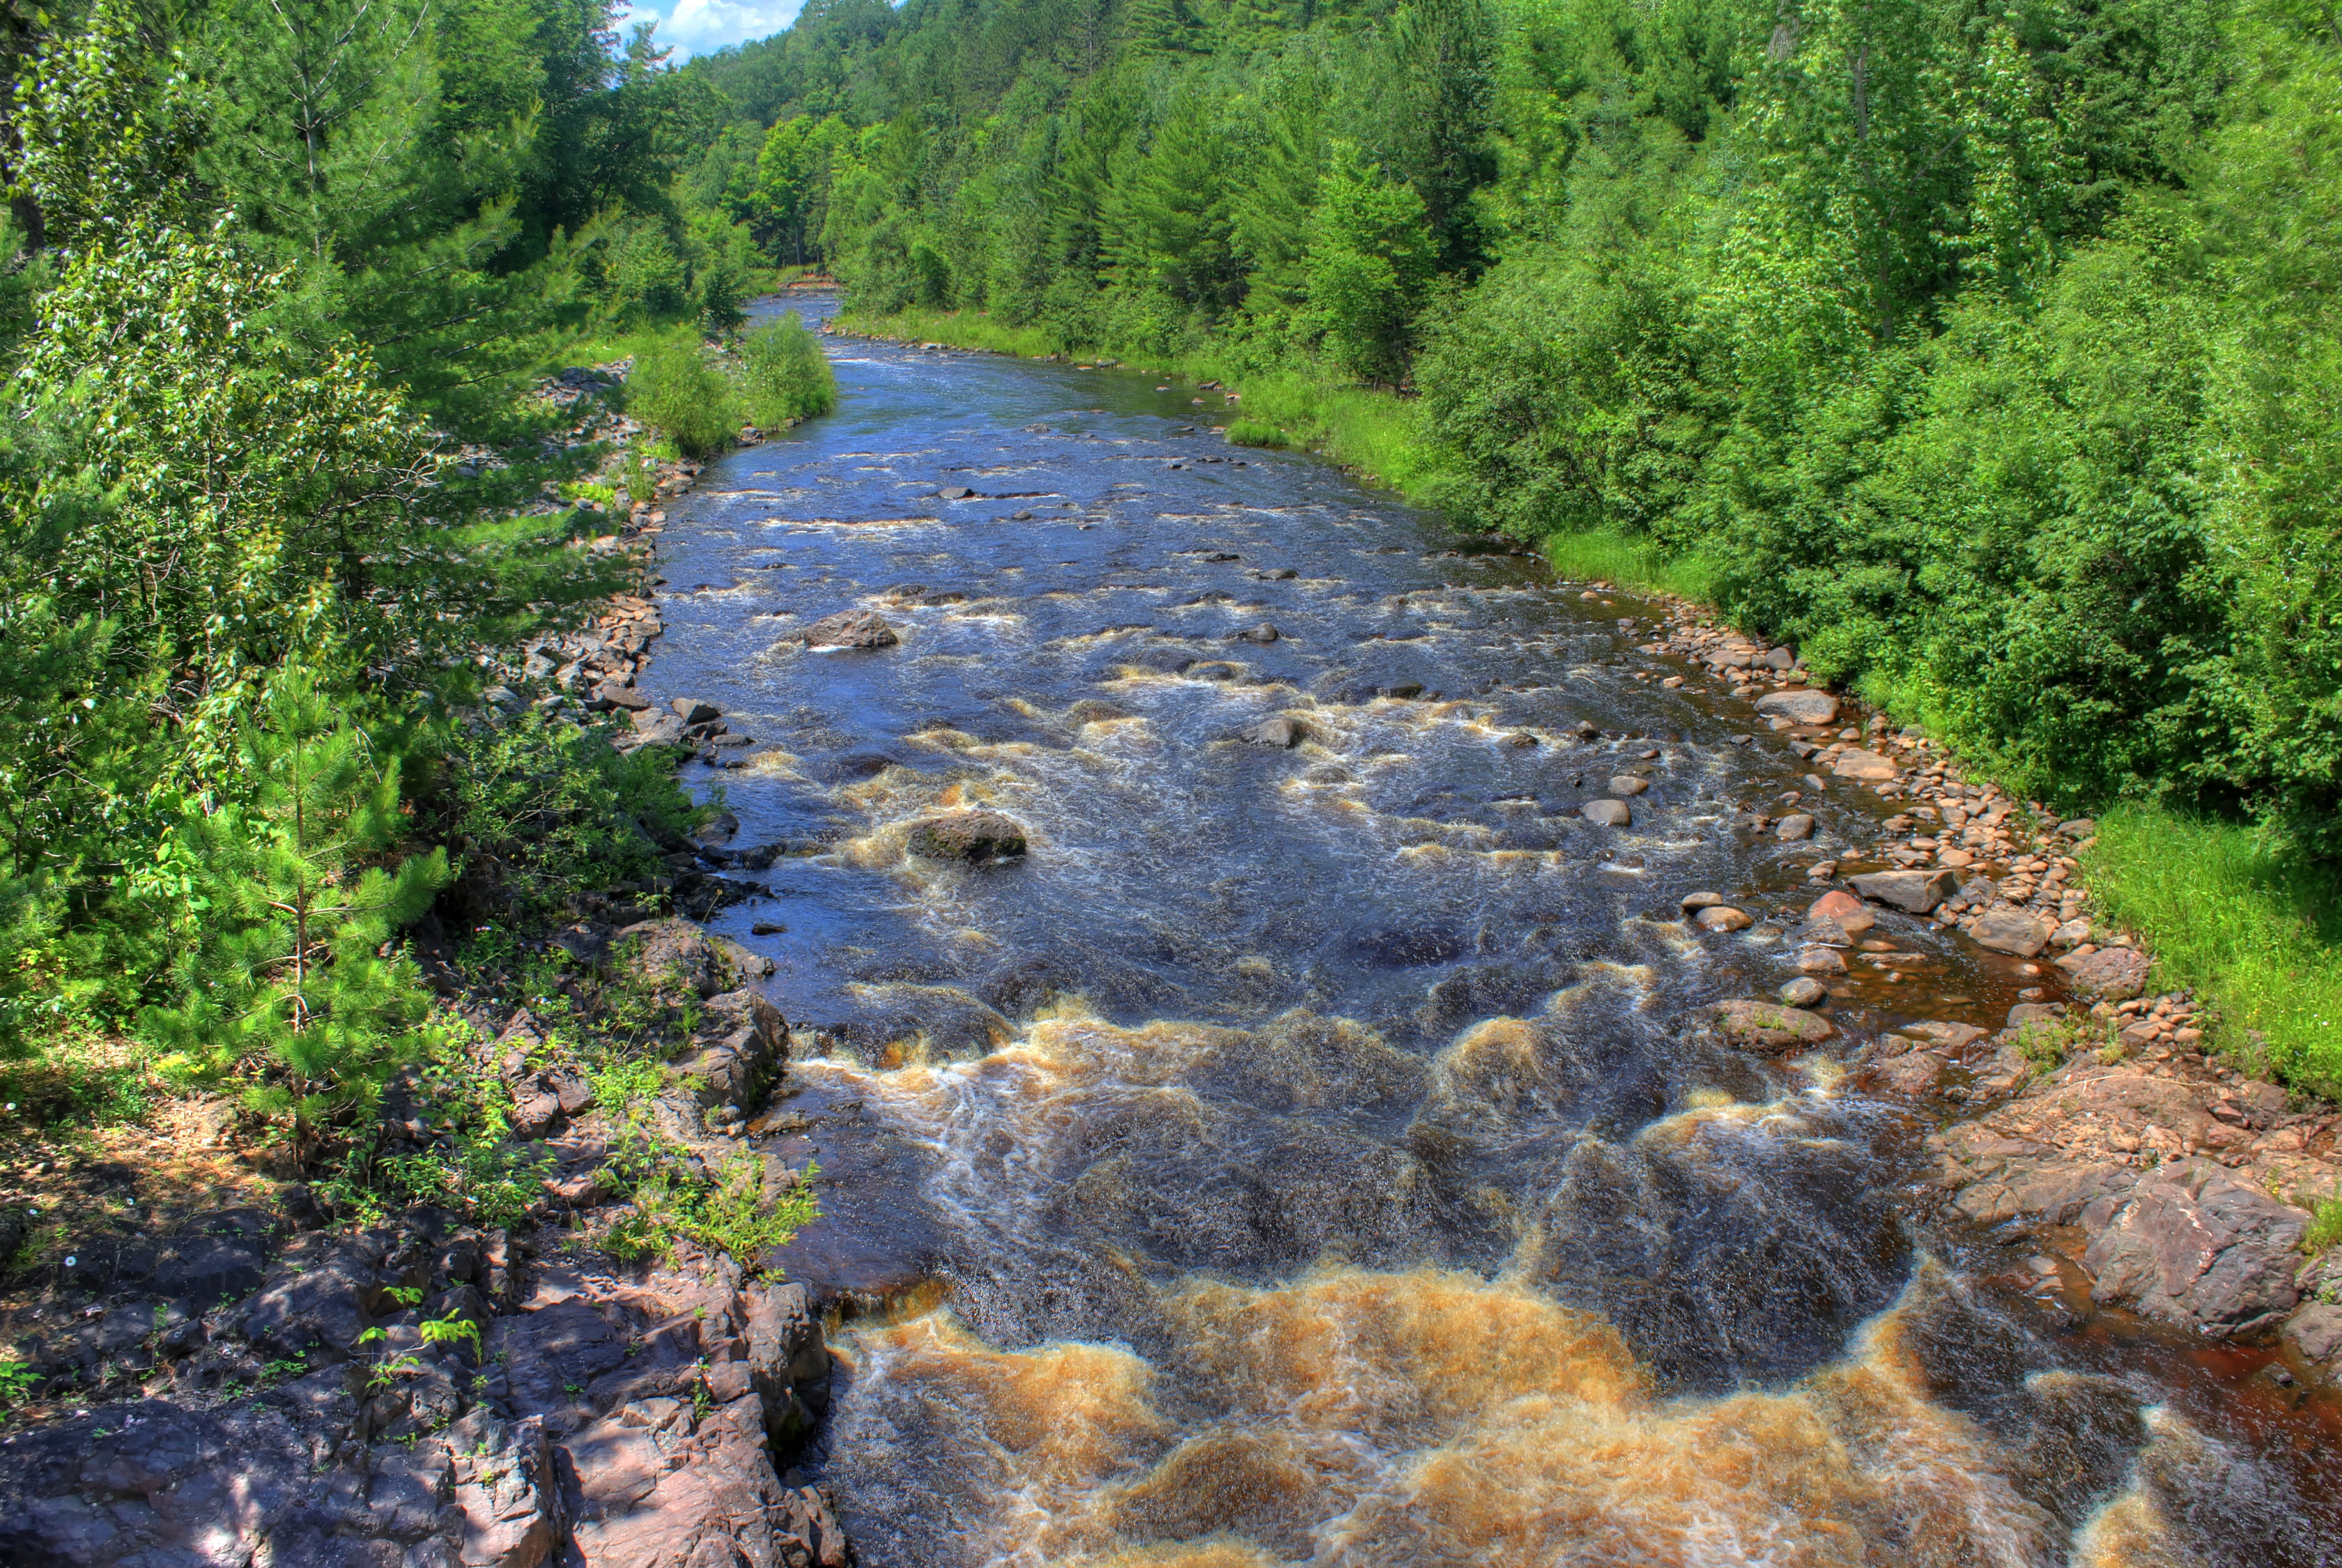 Rapids in the bad river at Copper Falls State Park, Wisconsin.